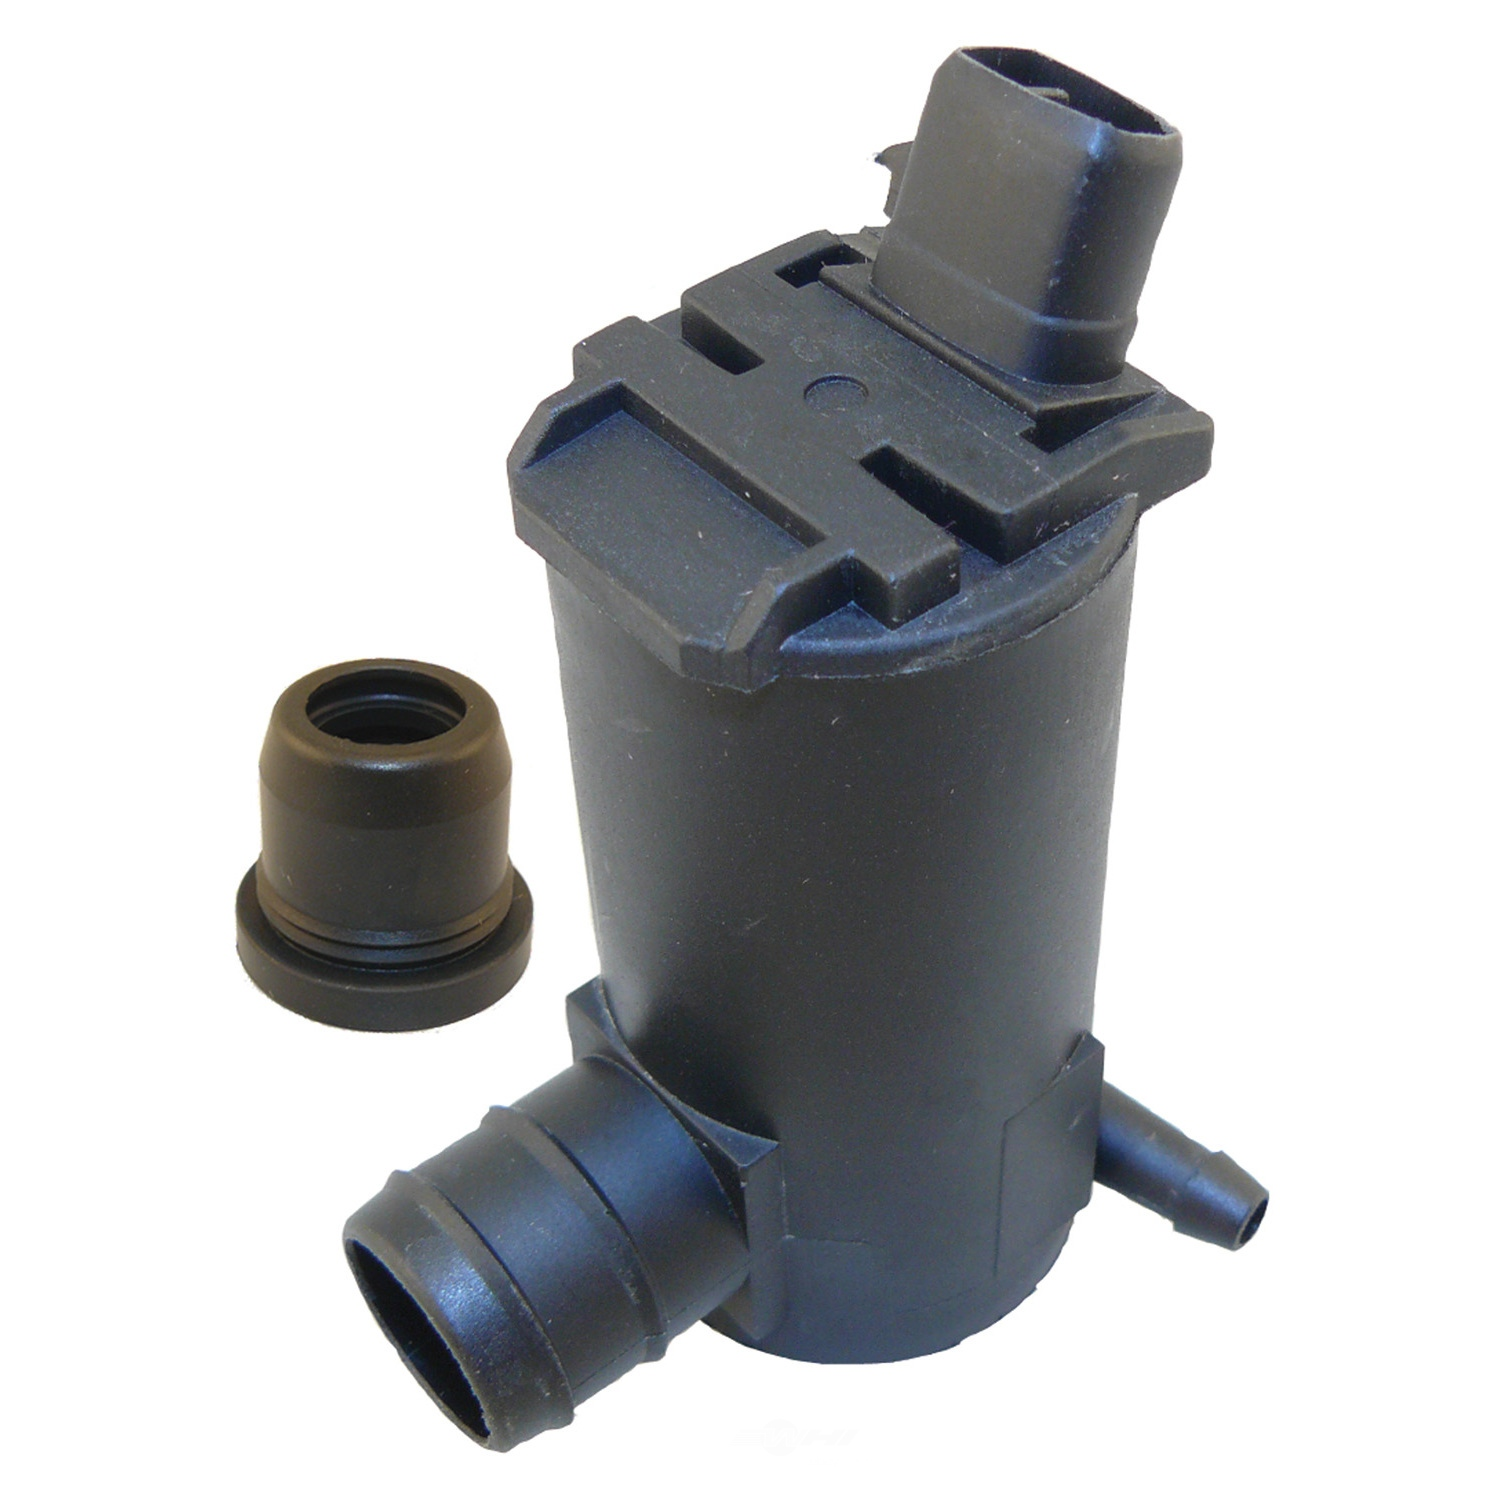 ANCO WIPER PRODUCTS - Windshield Washer Pump - ANC 67-40